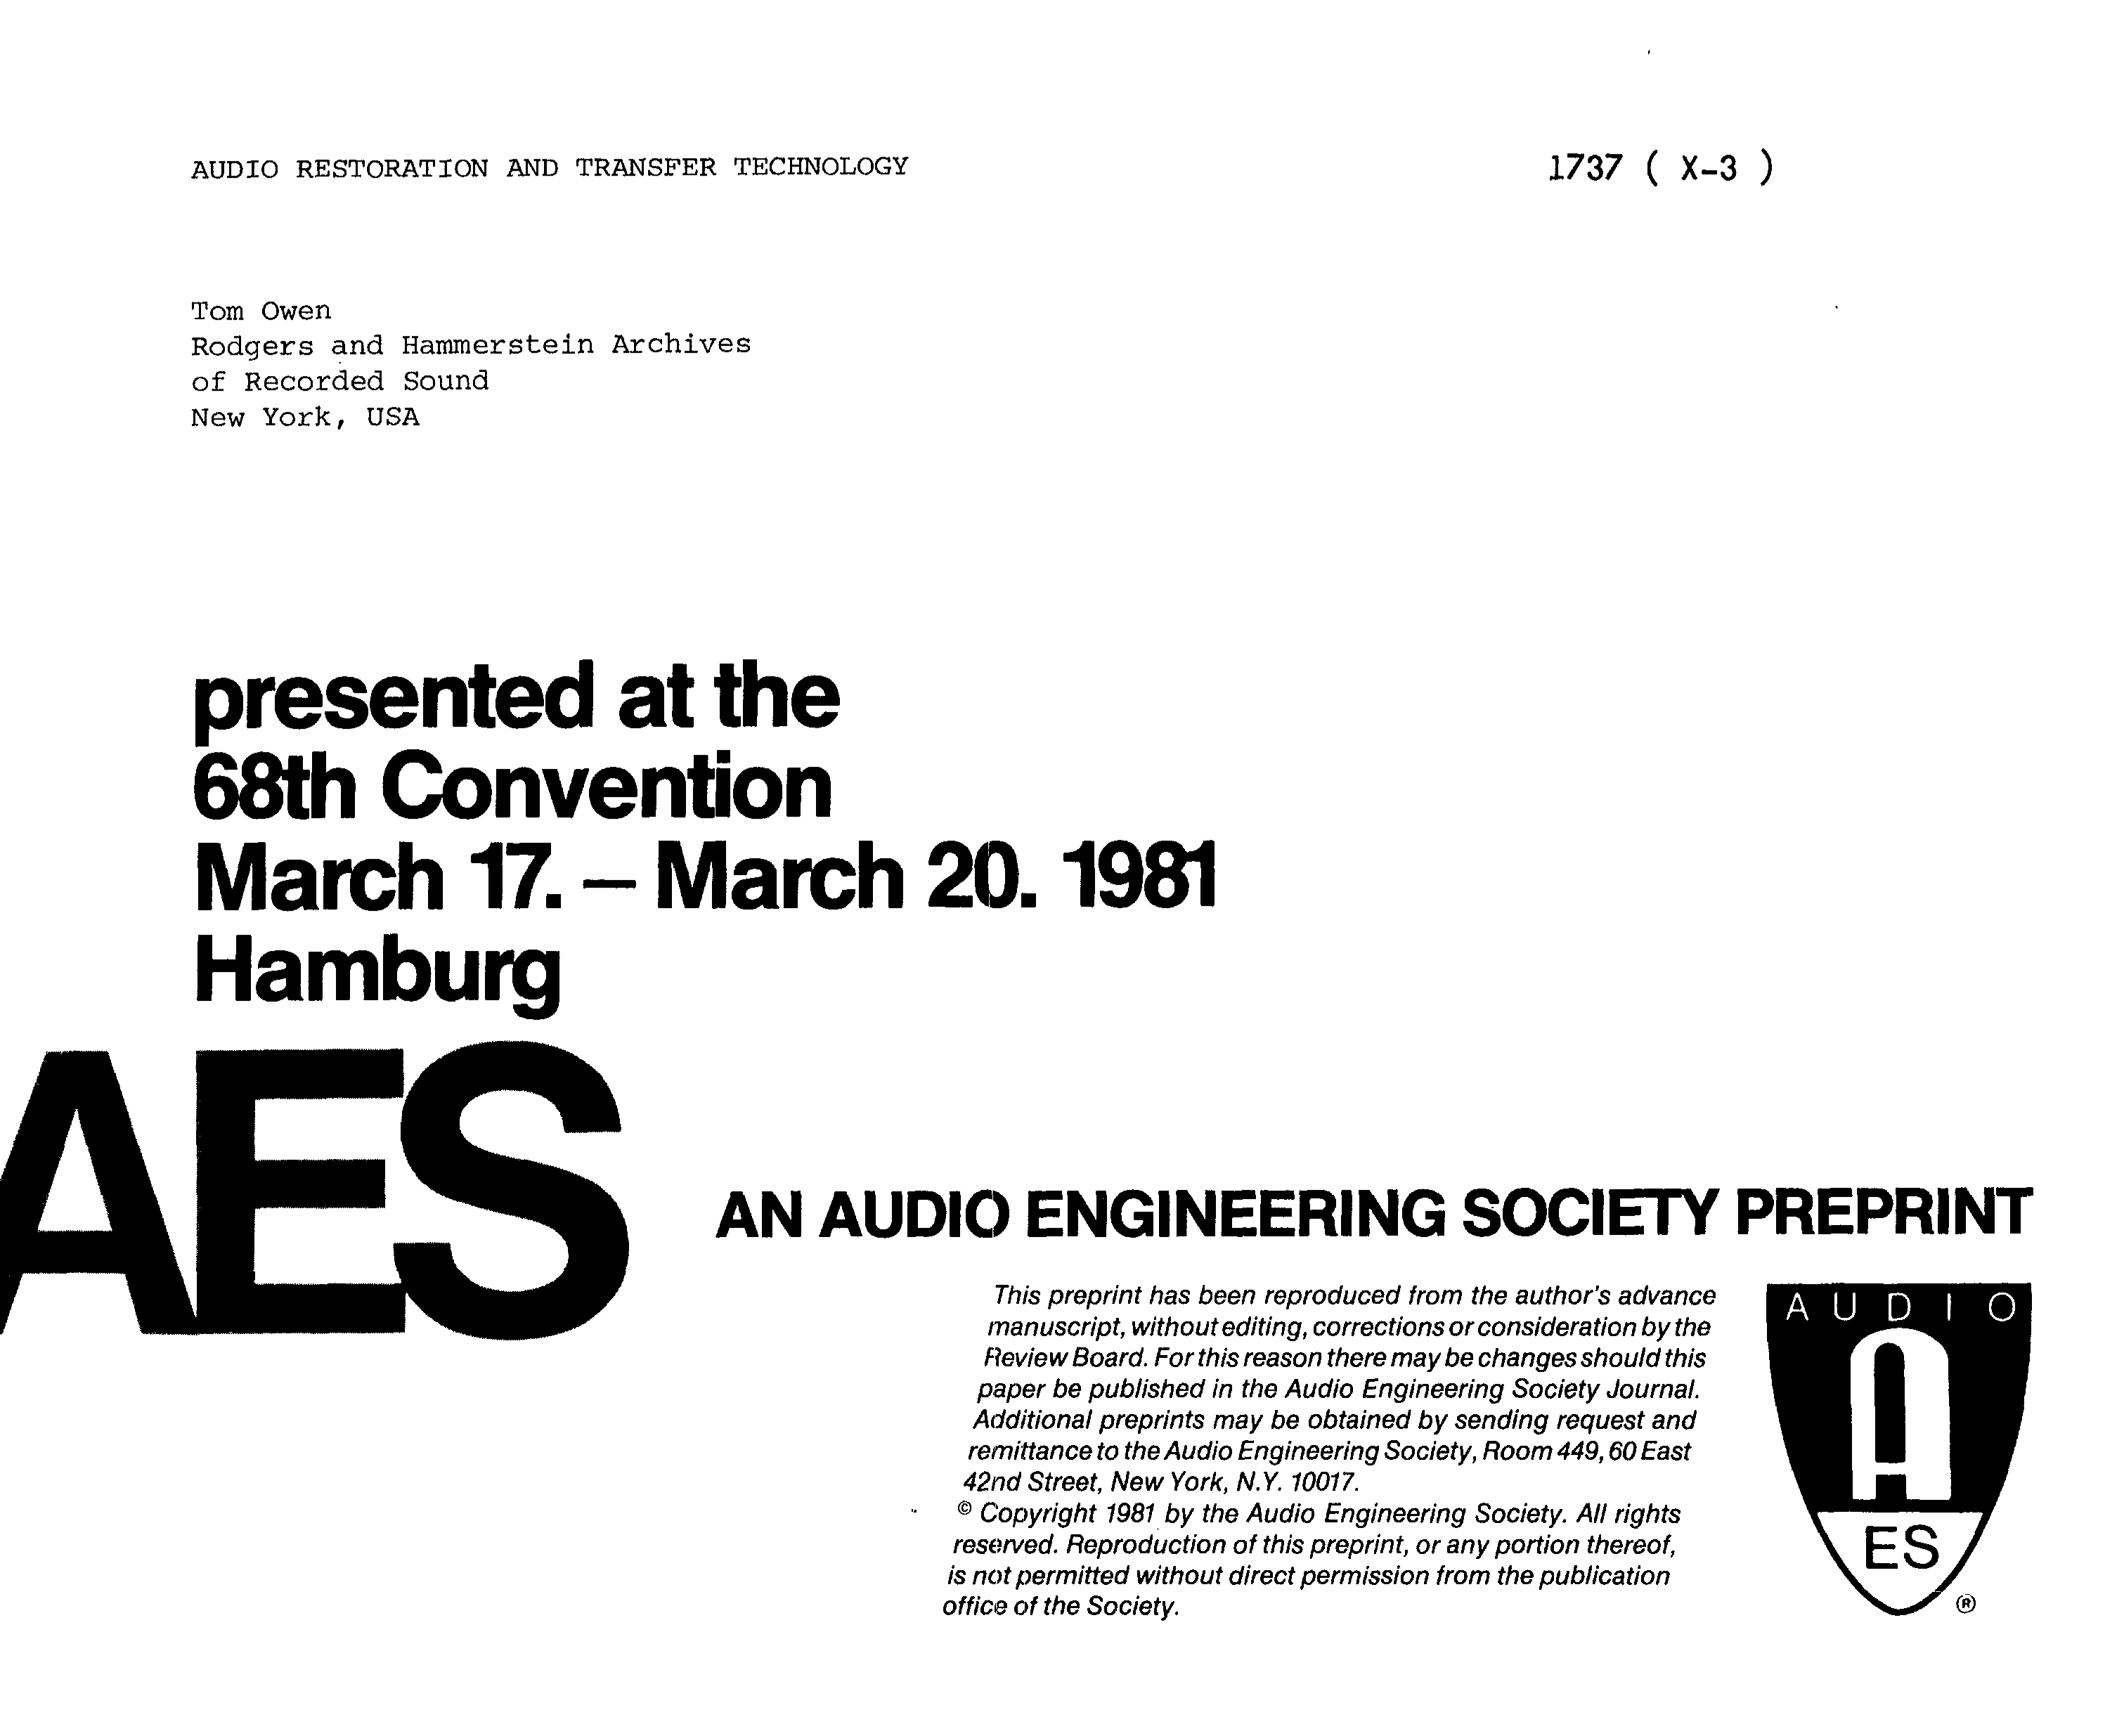 Aes E Library Audio Restoration And Transfer Technology How To Derive The Instrumentation Amplifier Function